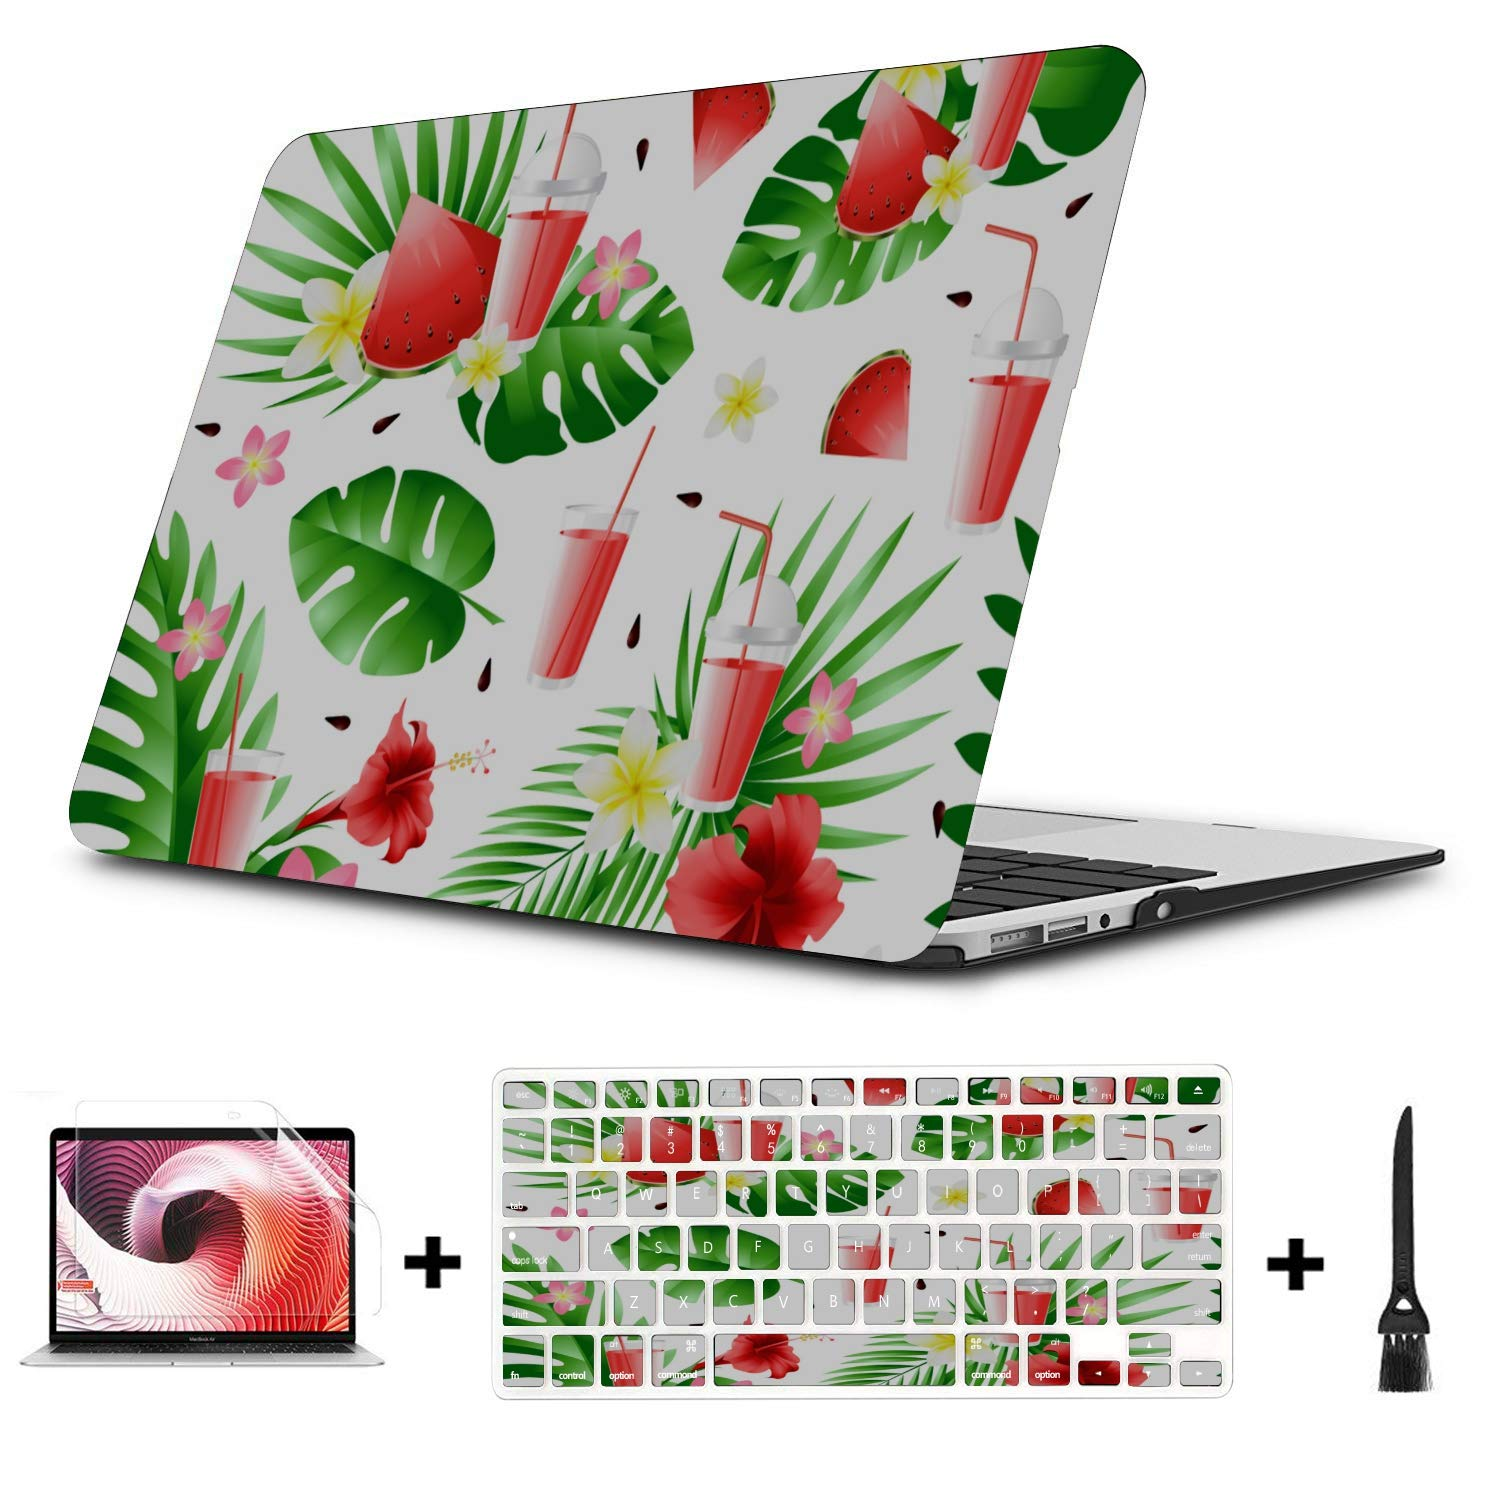 A1466 Case Summer Sweet Cool Watermelon Juice Plastic Hard Shell Compatible Mac Air 11 Pro 13 15 Laptop Cover Case Protection for MacBook 2016-2019 Version